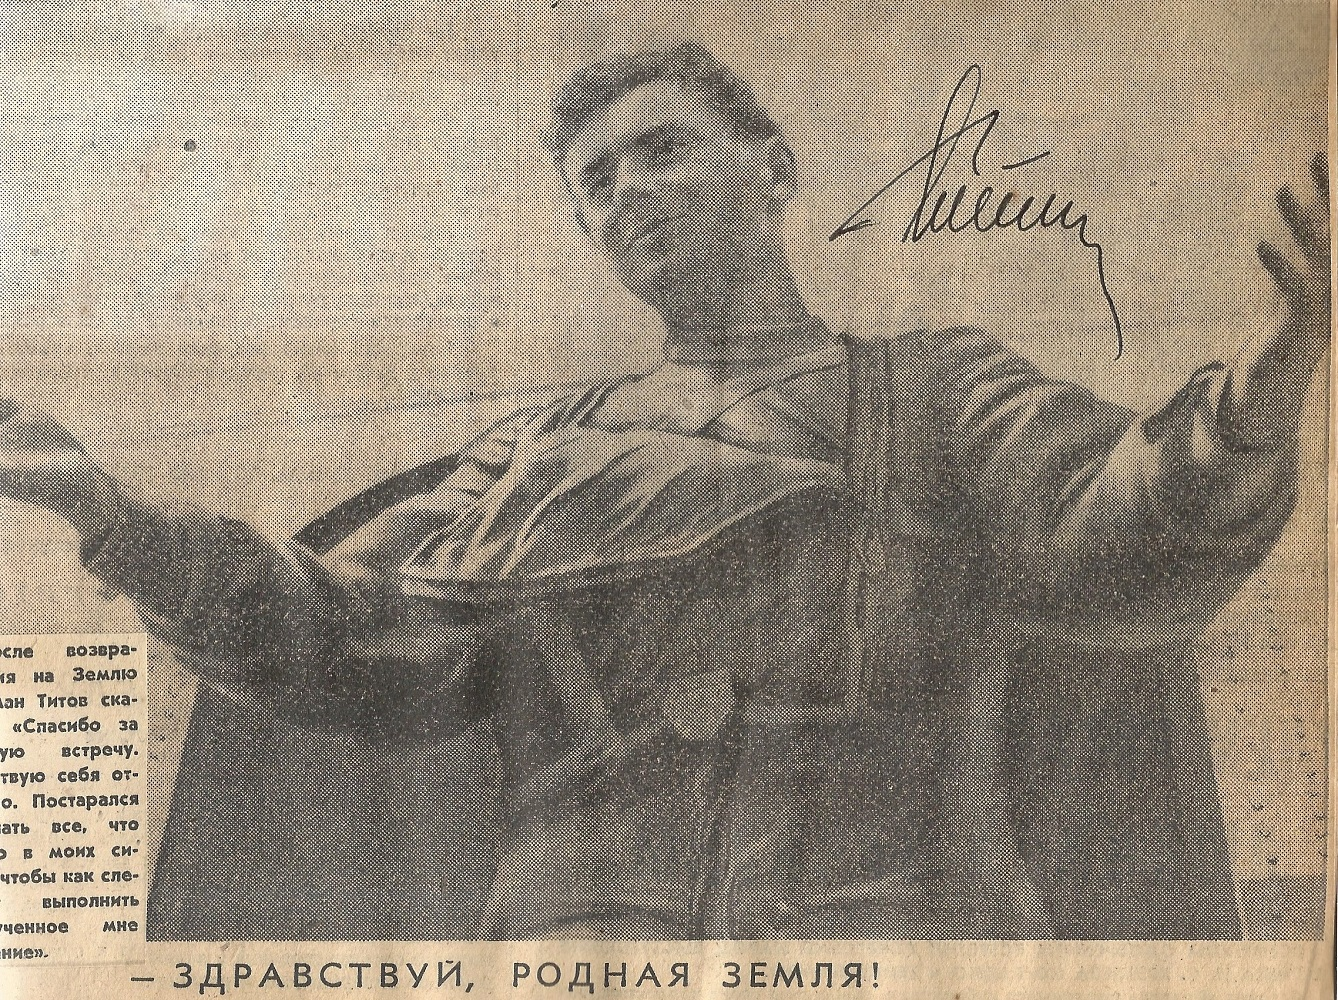 1950/60s Russian Cosmonauts multiple signed hard backed scrapbook compiled by a worker at Baikonur - Image 5 of 22